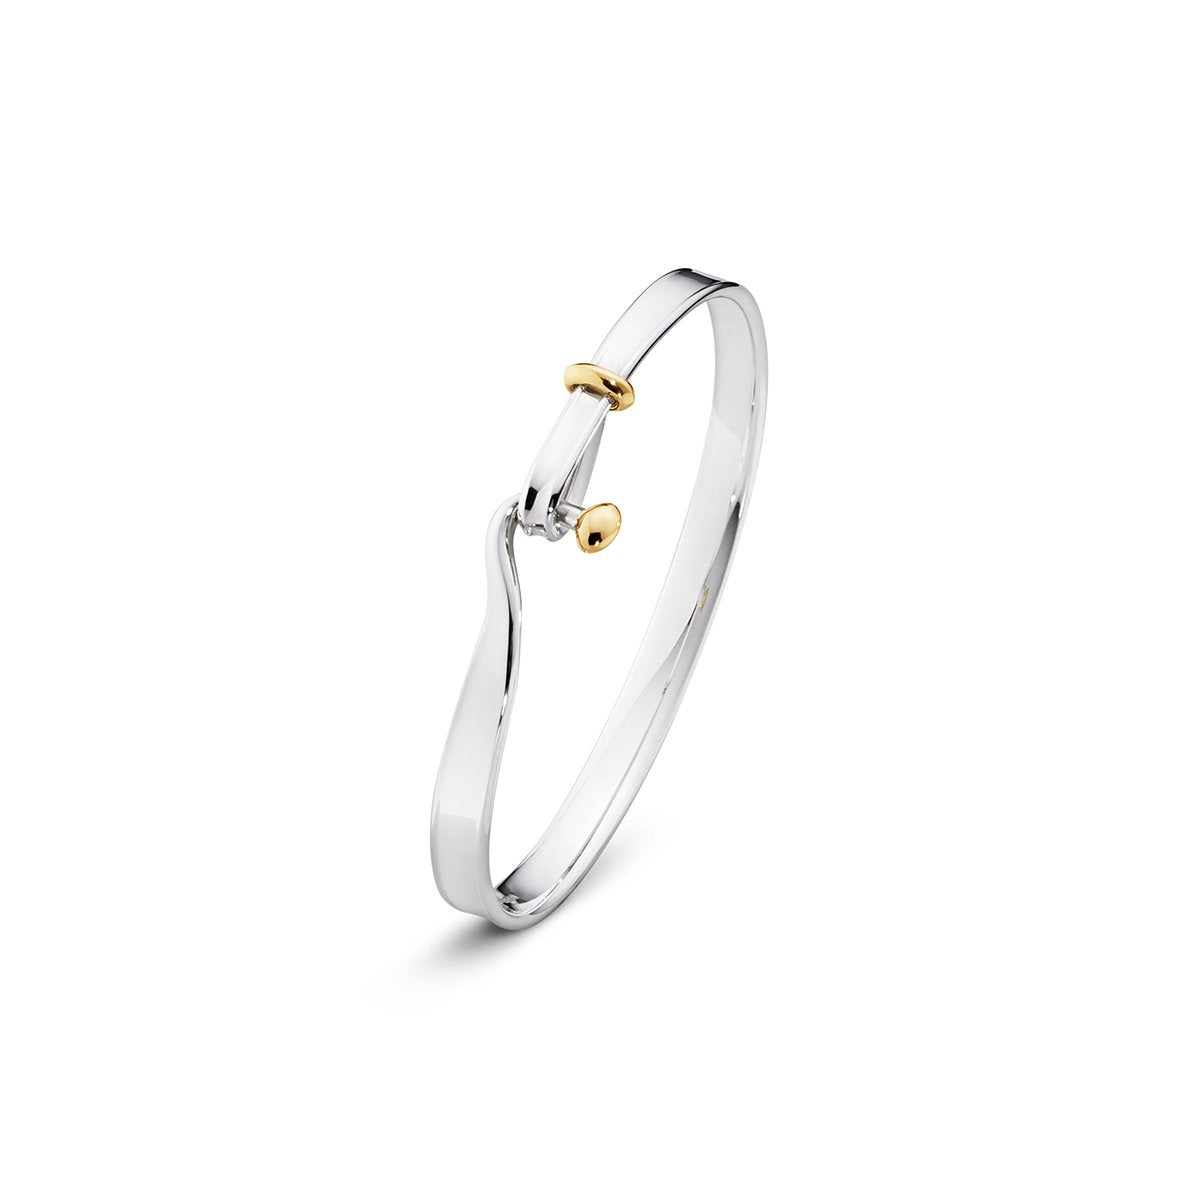 Georg Jensen Vivianna Torun Bangle in 18ct Yellow Gold & Sterling Silver-Hamilton & Inches